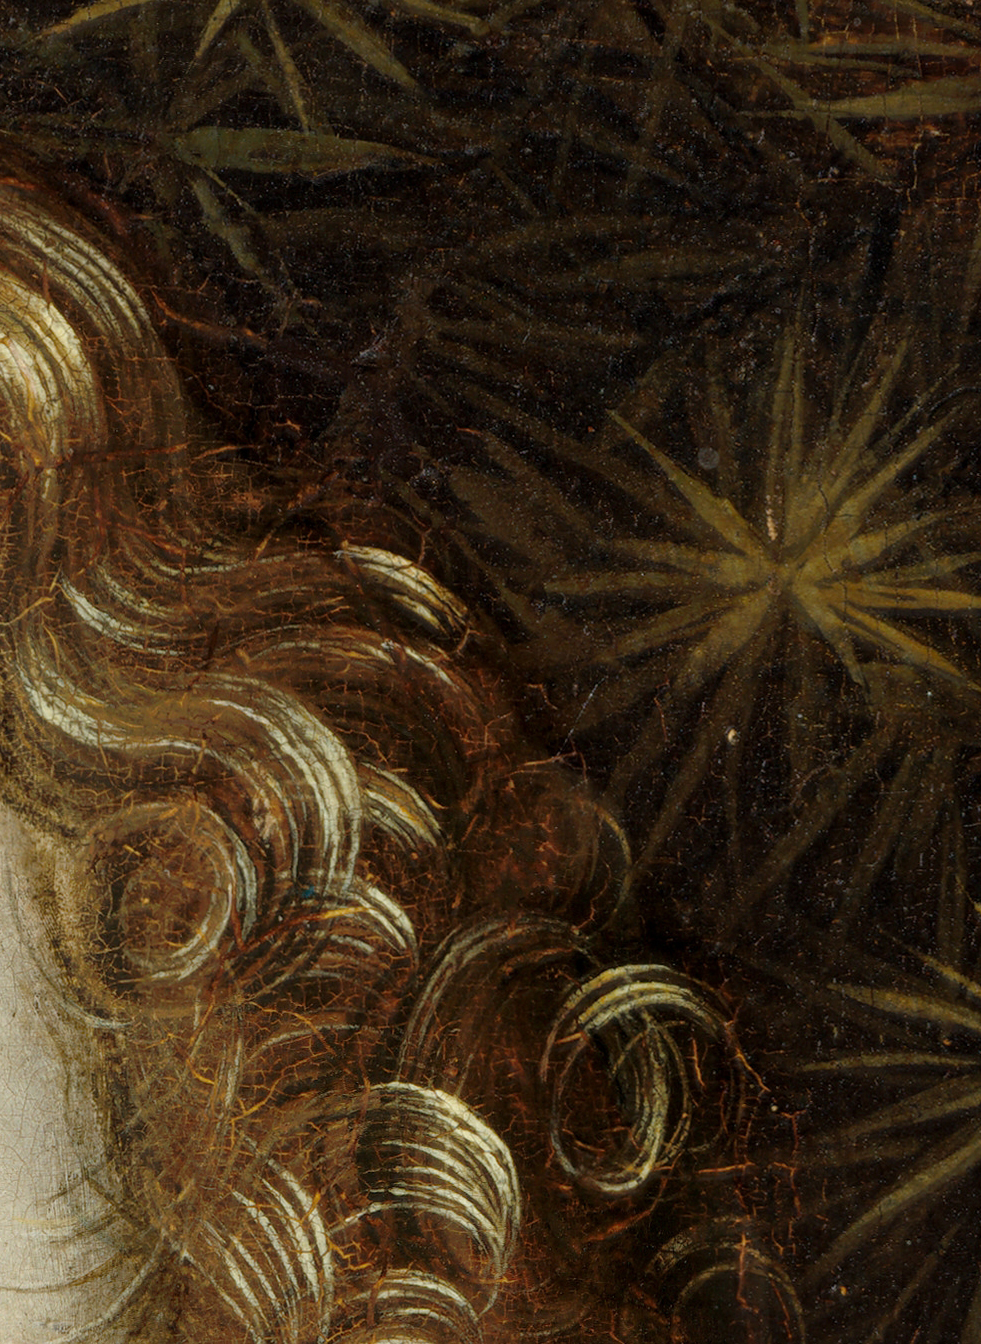 Detail from Ginevra de' Benci (c. 1475) by Leonardo da Vinci